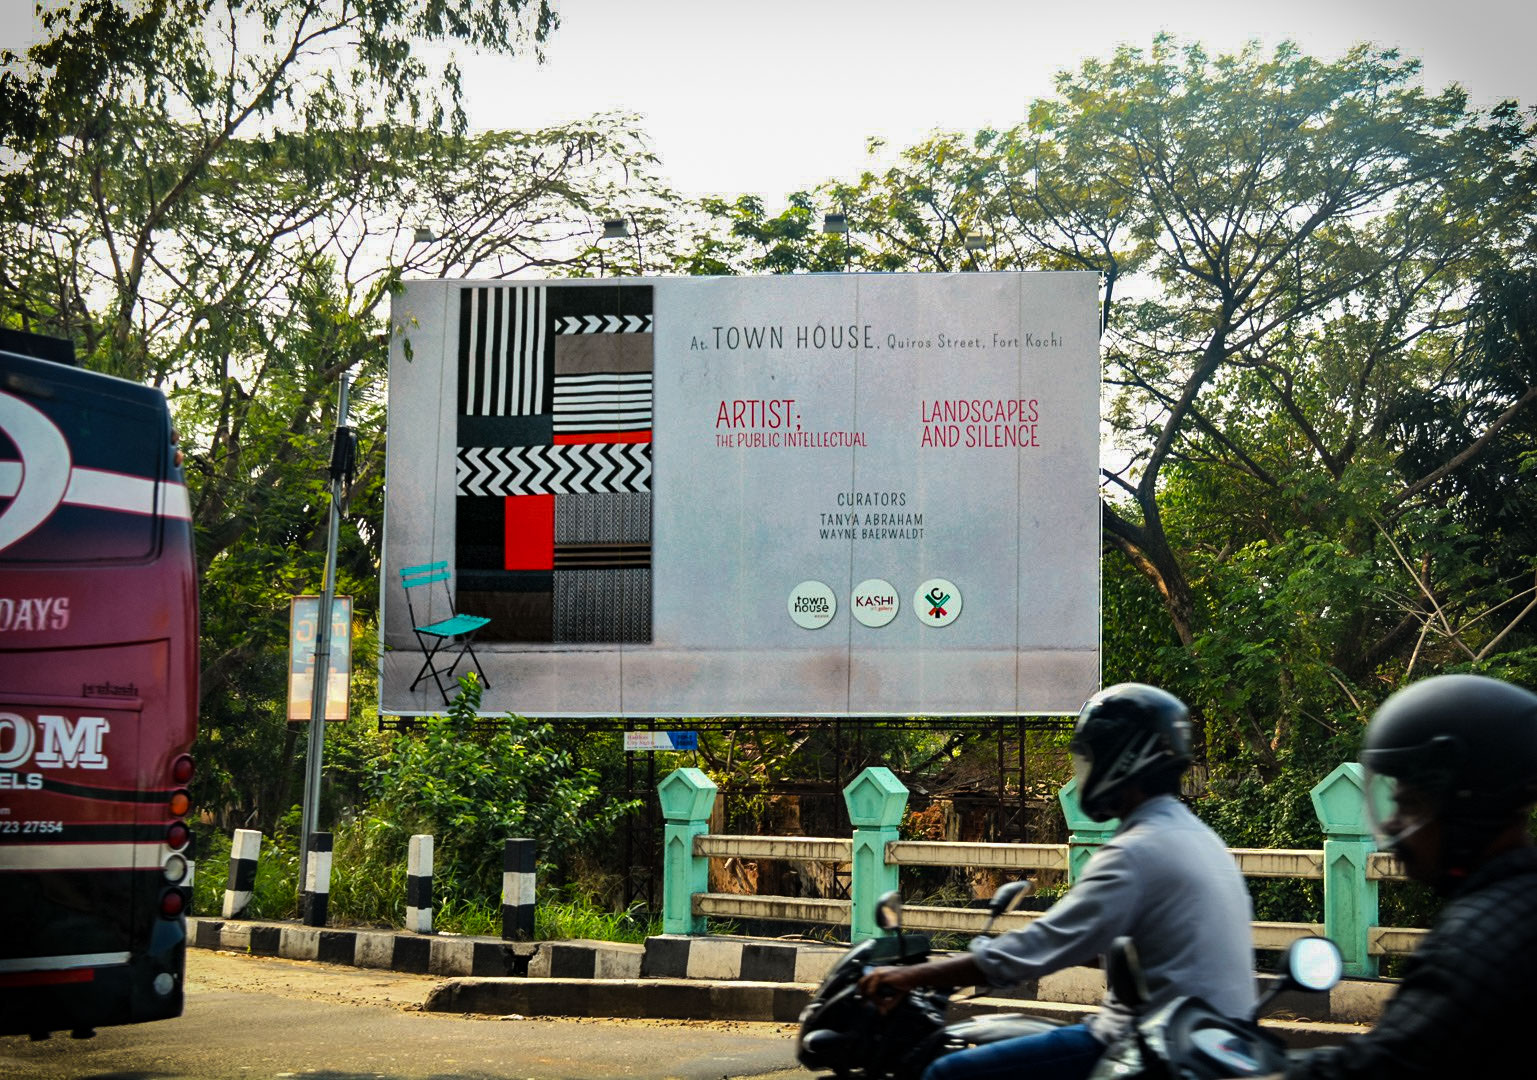 Billboard featuring the piece Shift on the Mattancherry Bridge, Fort Kochi, India